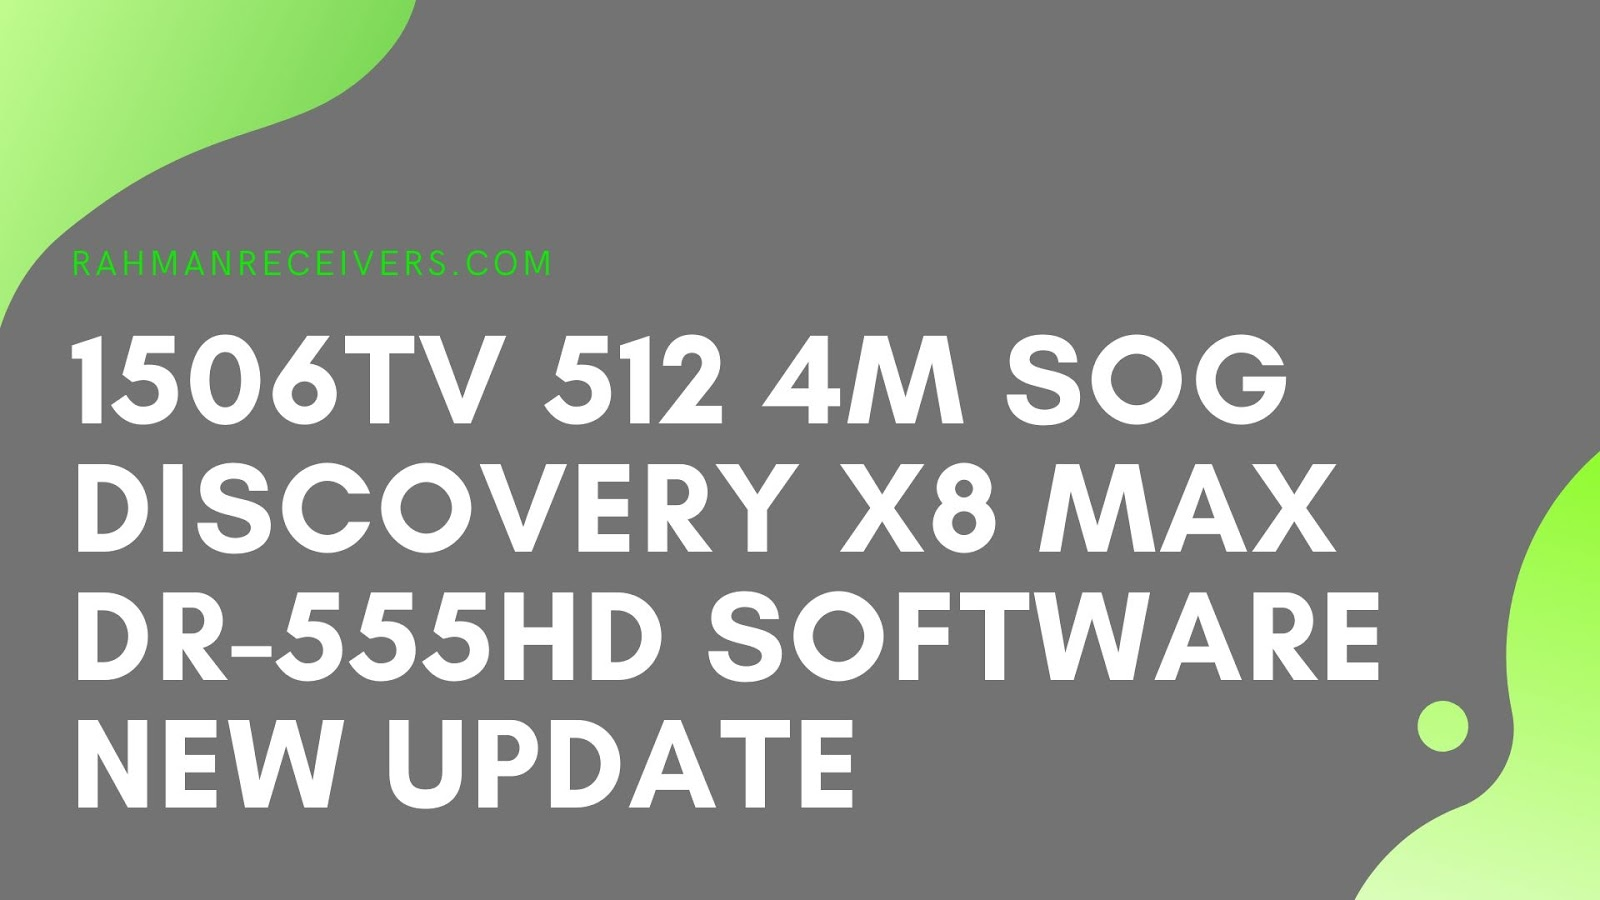 1506TV 512 4M SOG DISCOVERY X8 MAX DR-555HD SOFTWARE NEW UPDATE